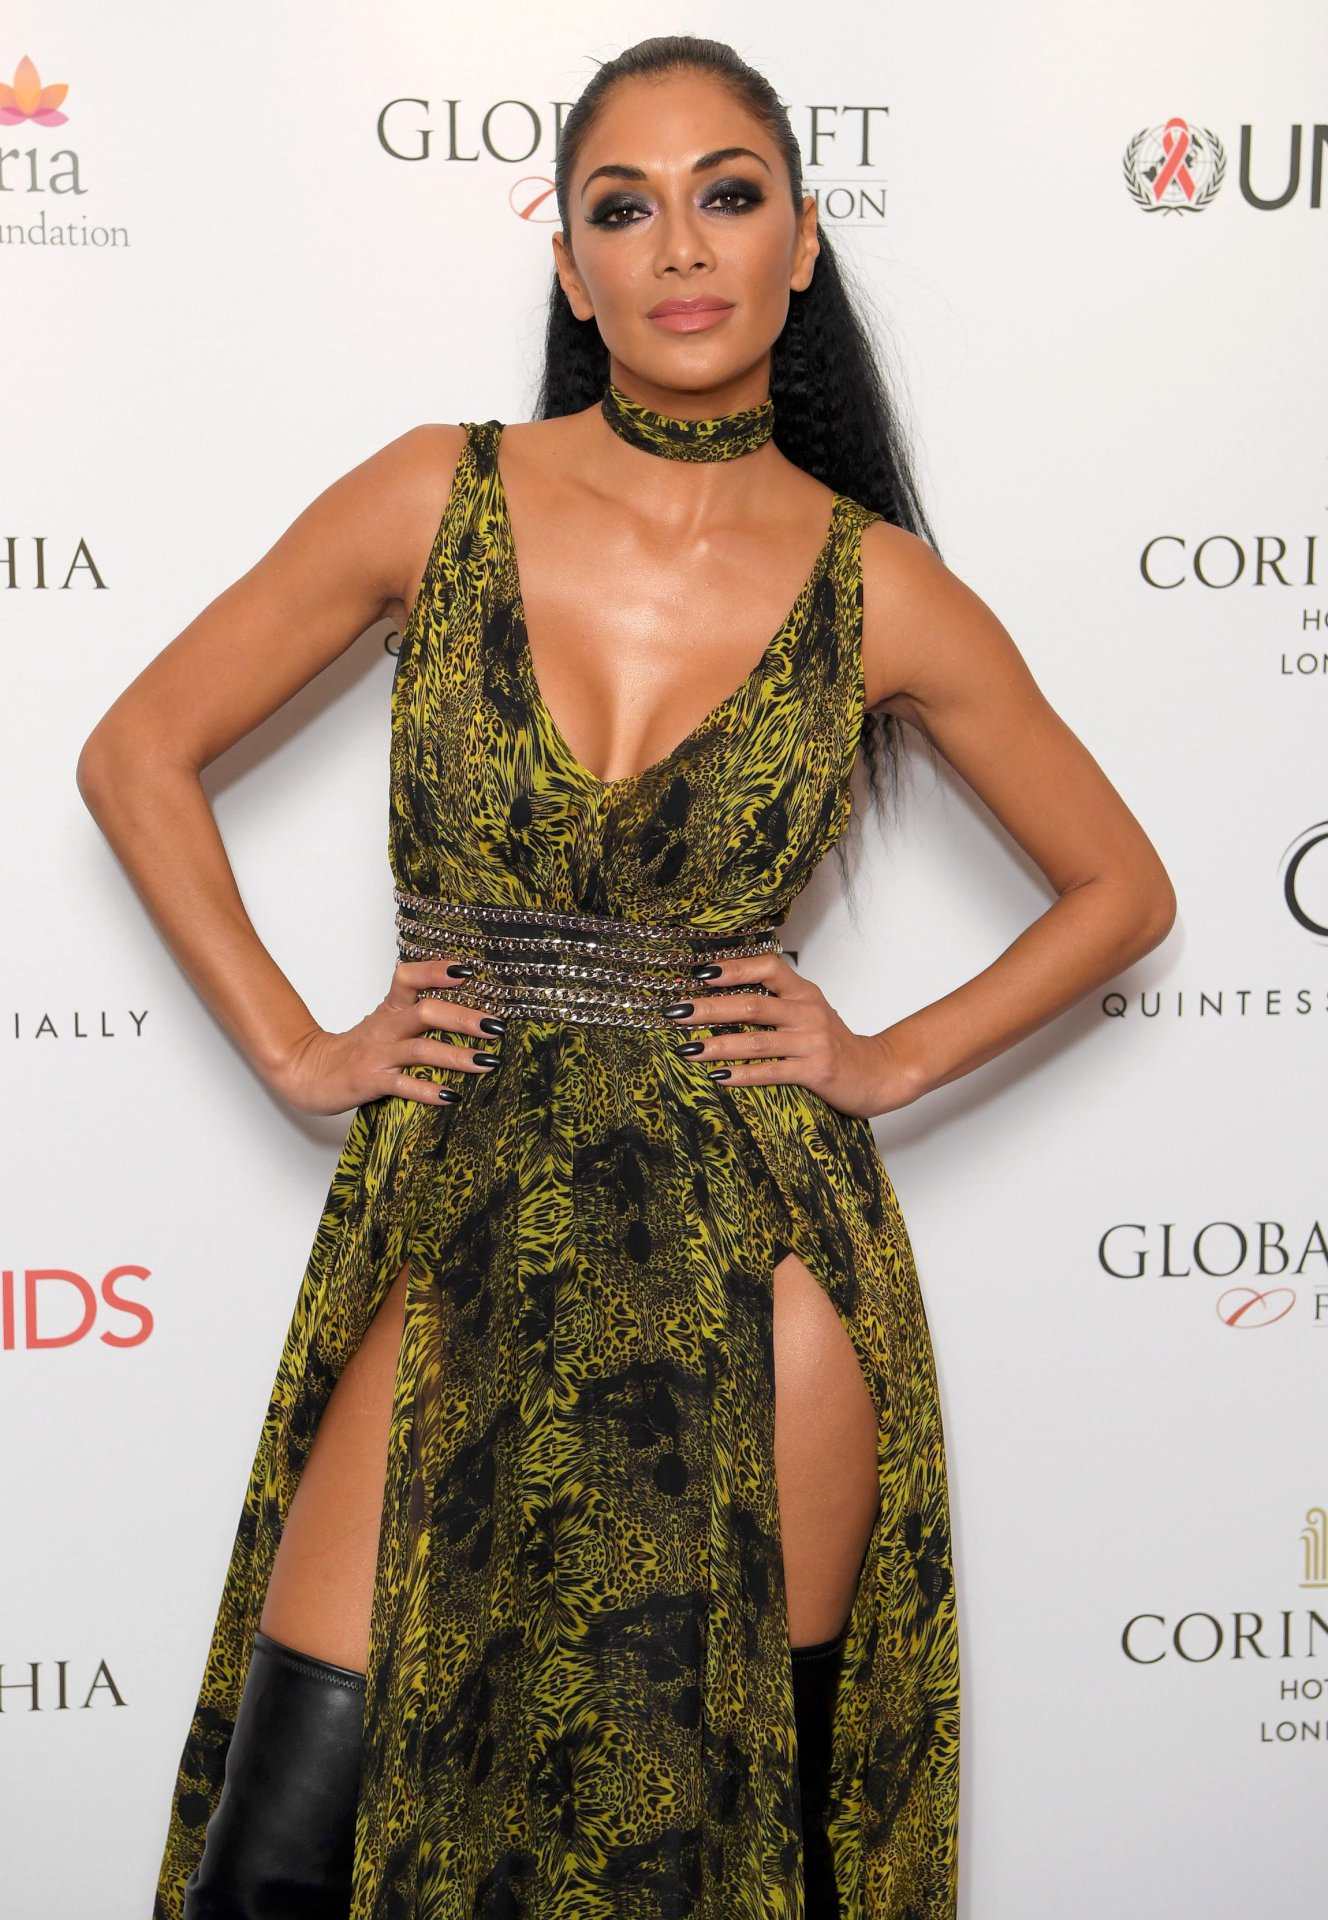 Nicole Scherzinger - The Global Gift Gala 2016 in London